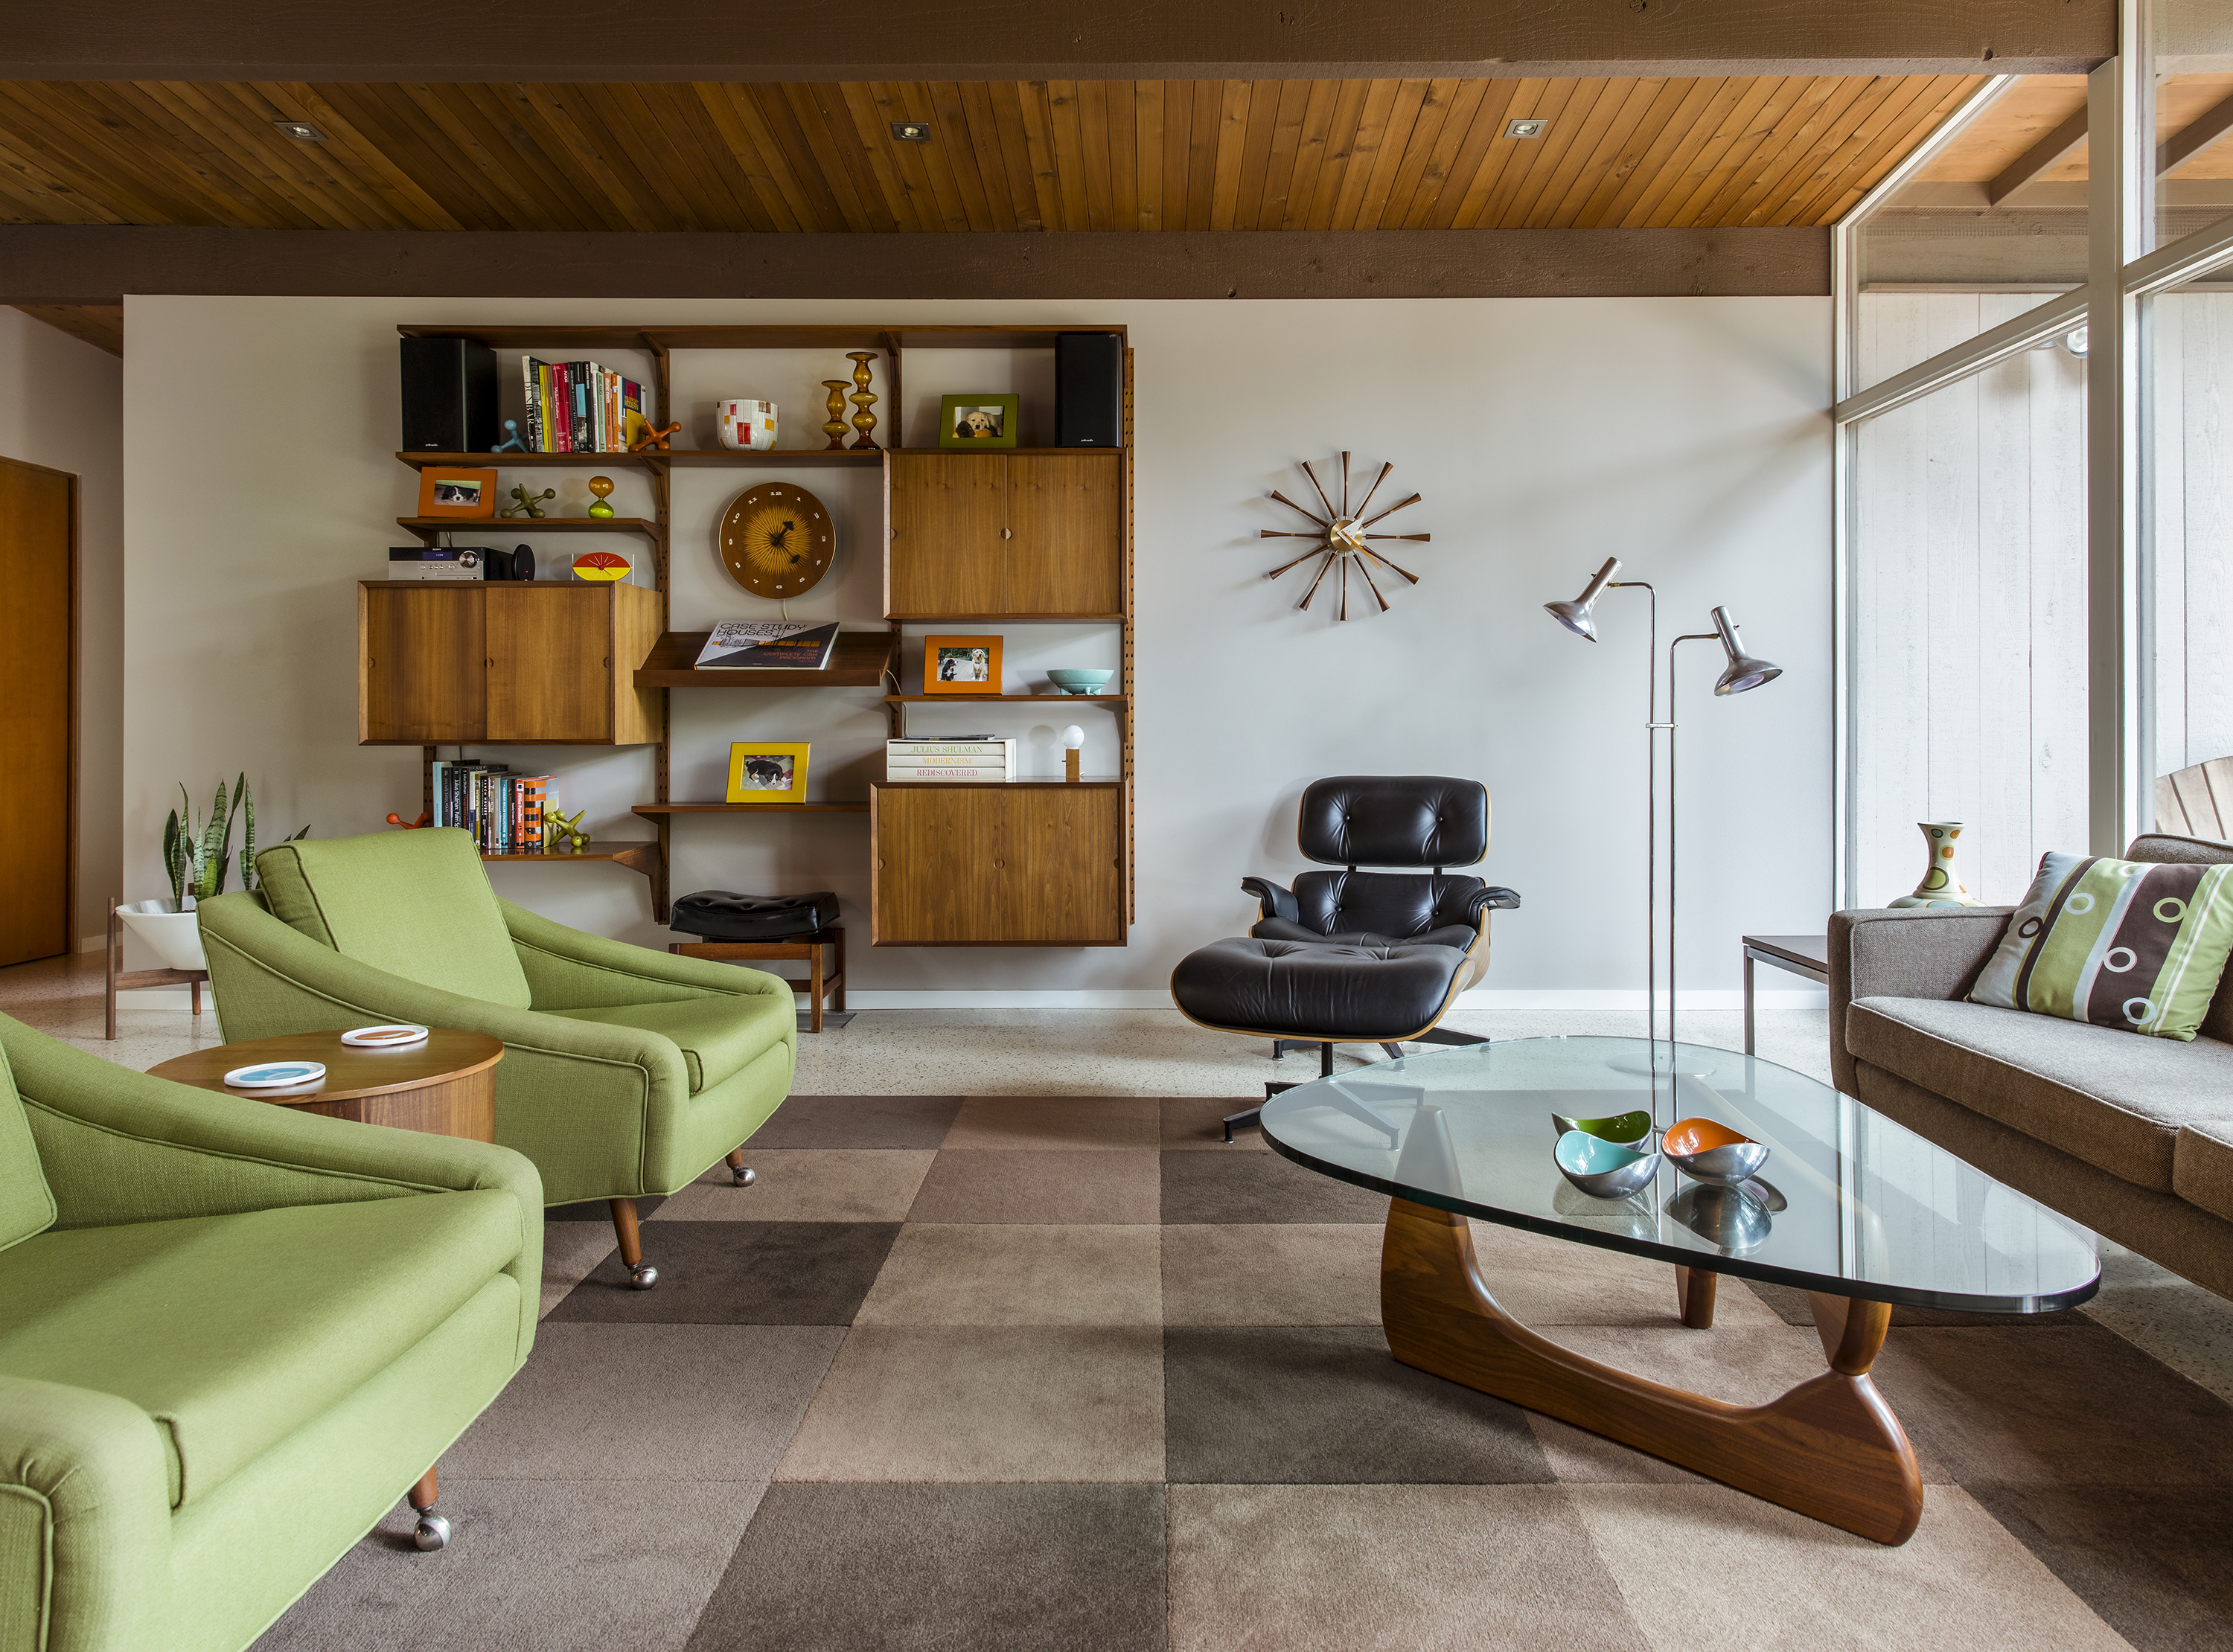 The living room is decorated with  mostly  vintage midcentury modern  furniture. Remaking midcentury modern in Portland   Curbed